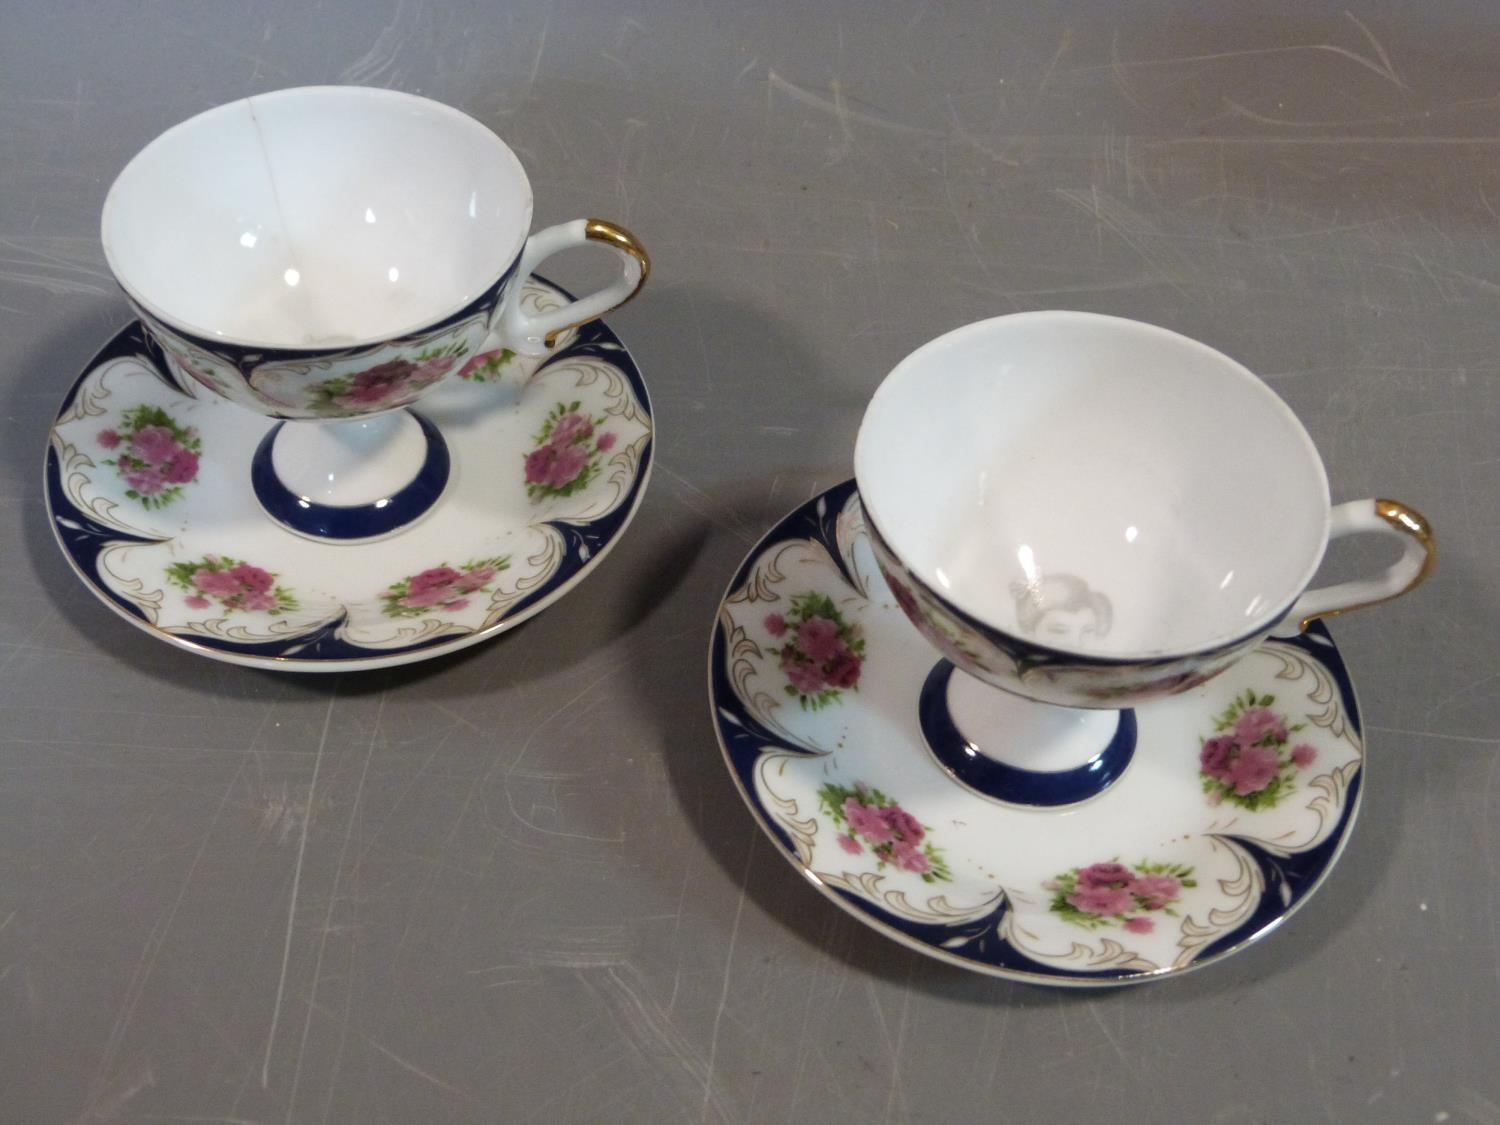 A ceramic Malaysian tea set and a pair of porcelain tea cups and saucers. The tea cups have a - Image 10 of 15